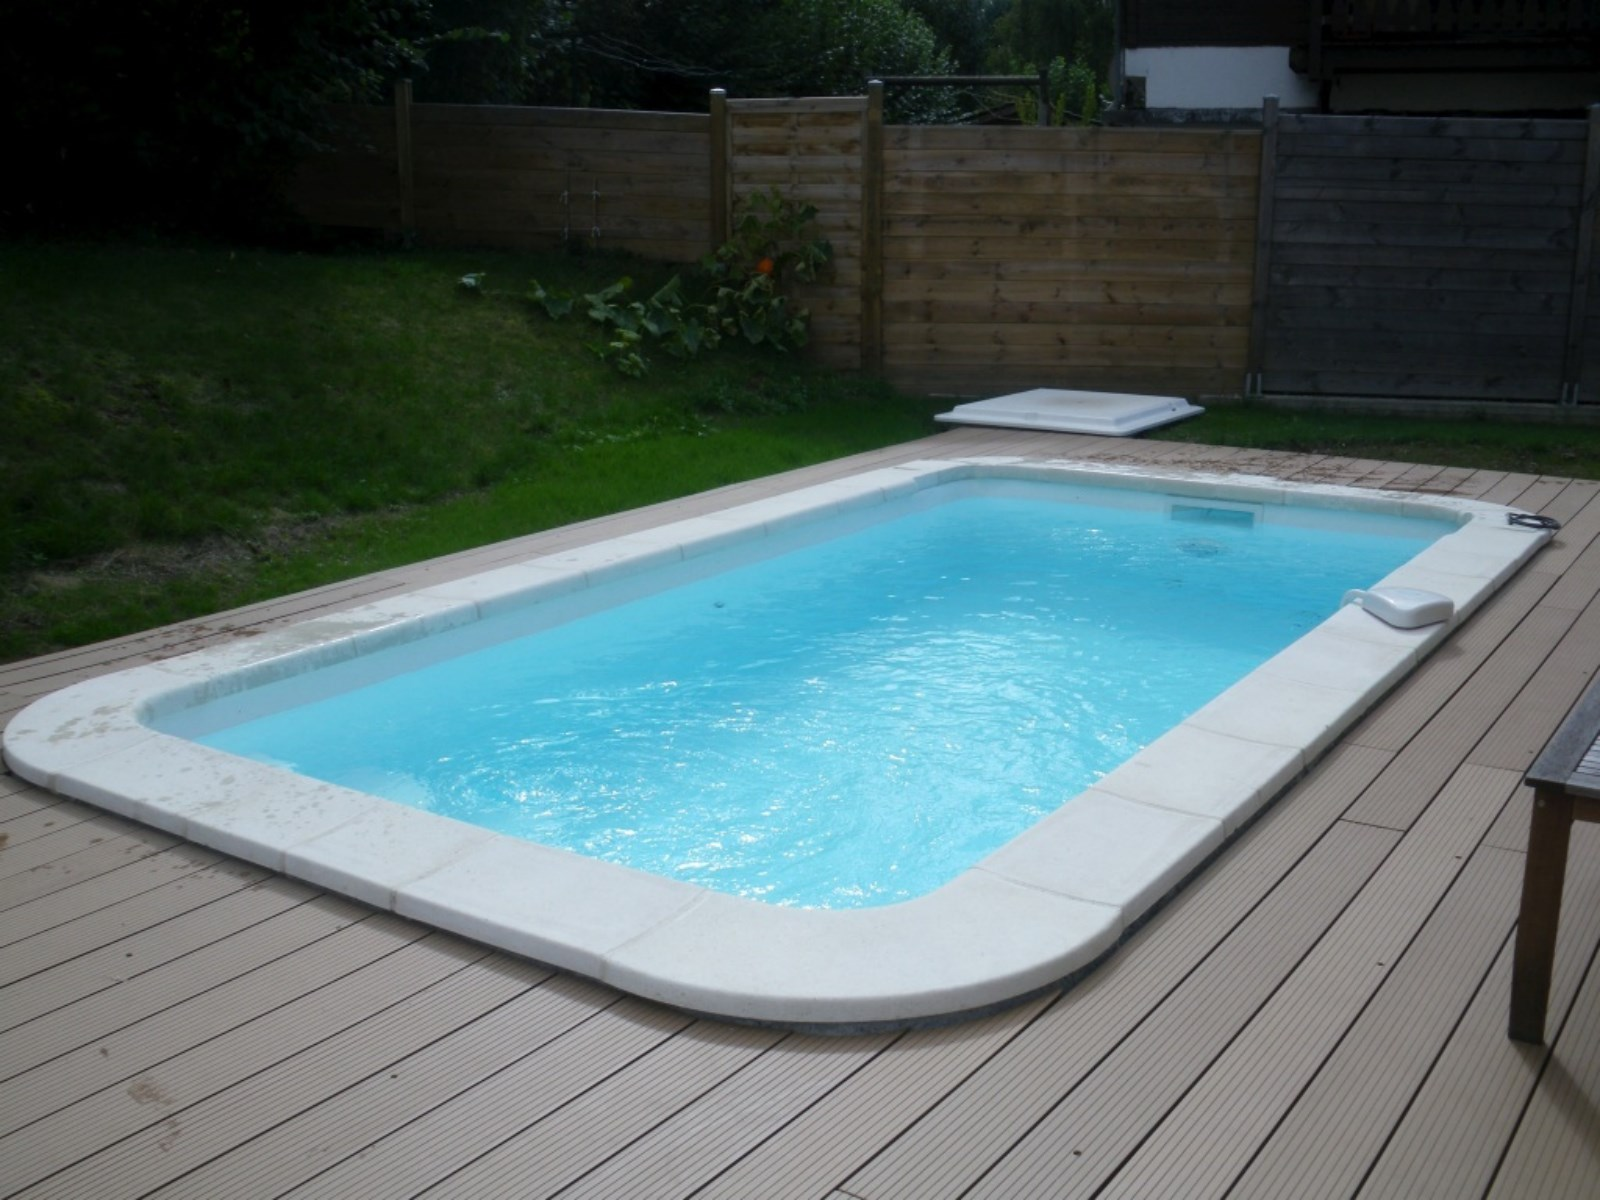 Piscine coque polyester mod le minorque grenoble avec for Piscine 10m2